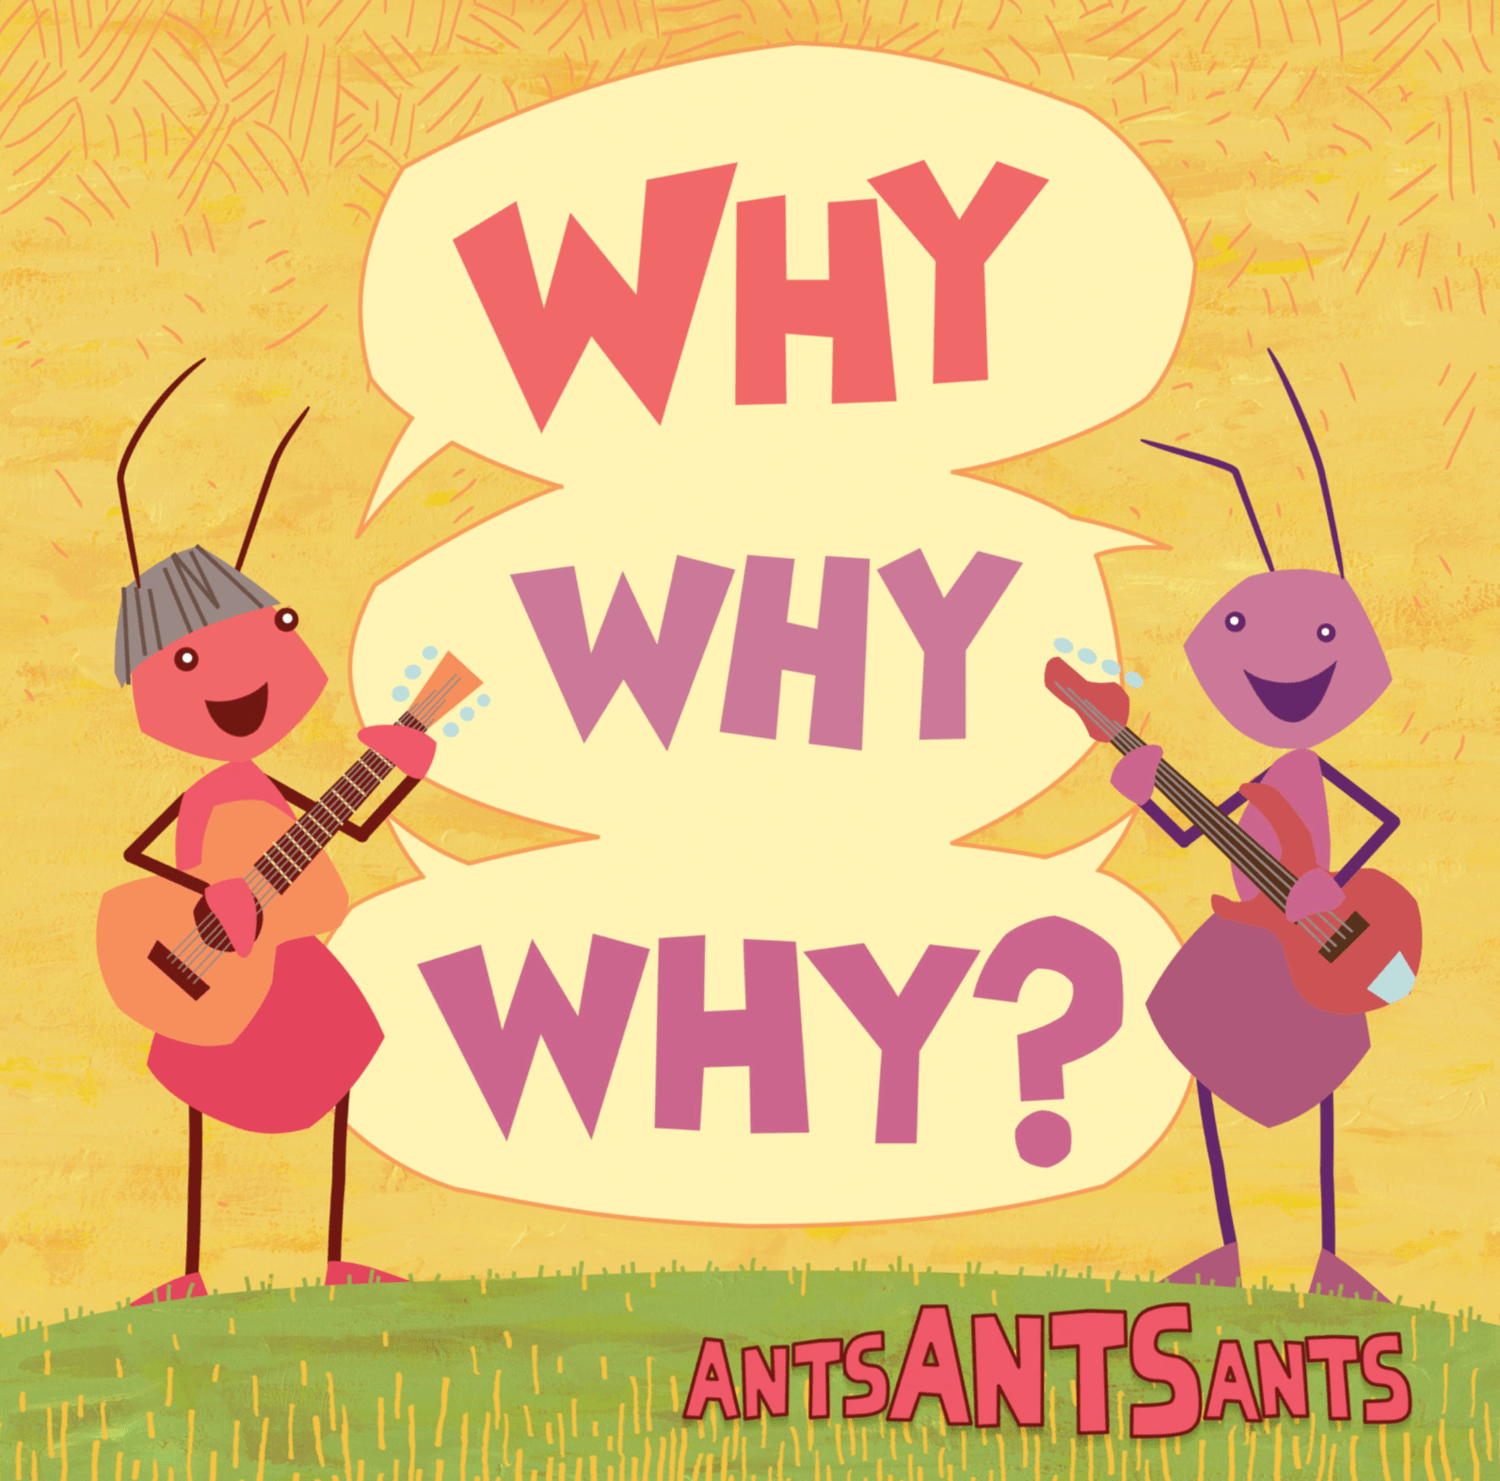 Ants Ants Ants Why Why Why? CD cover